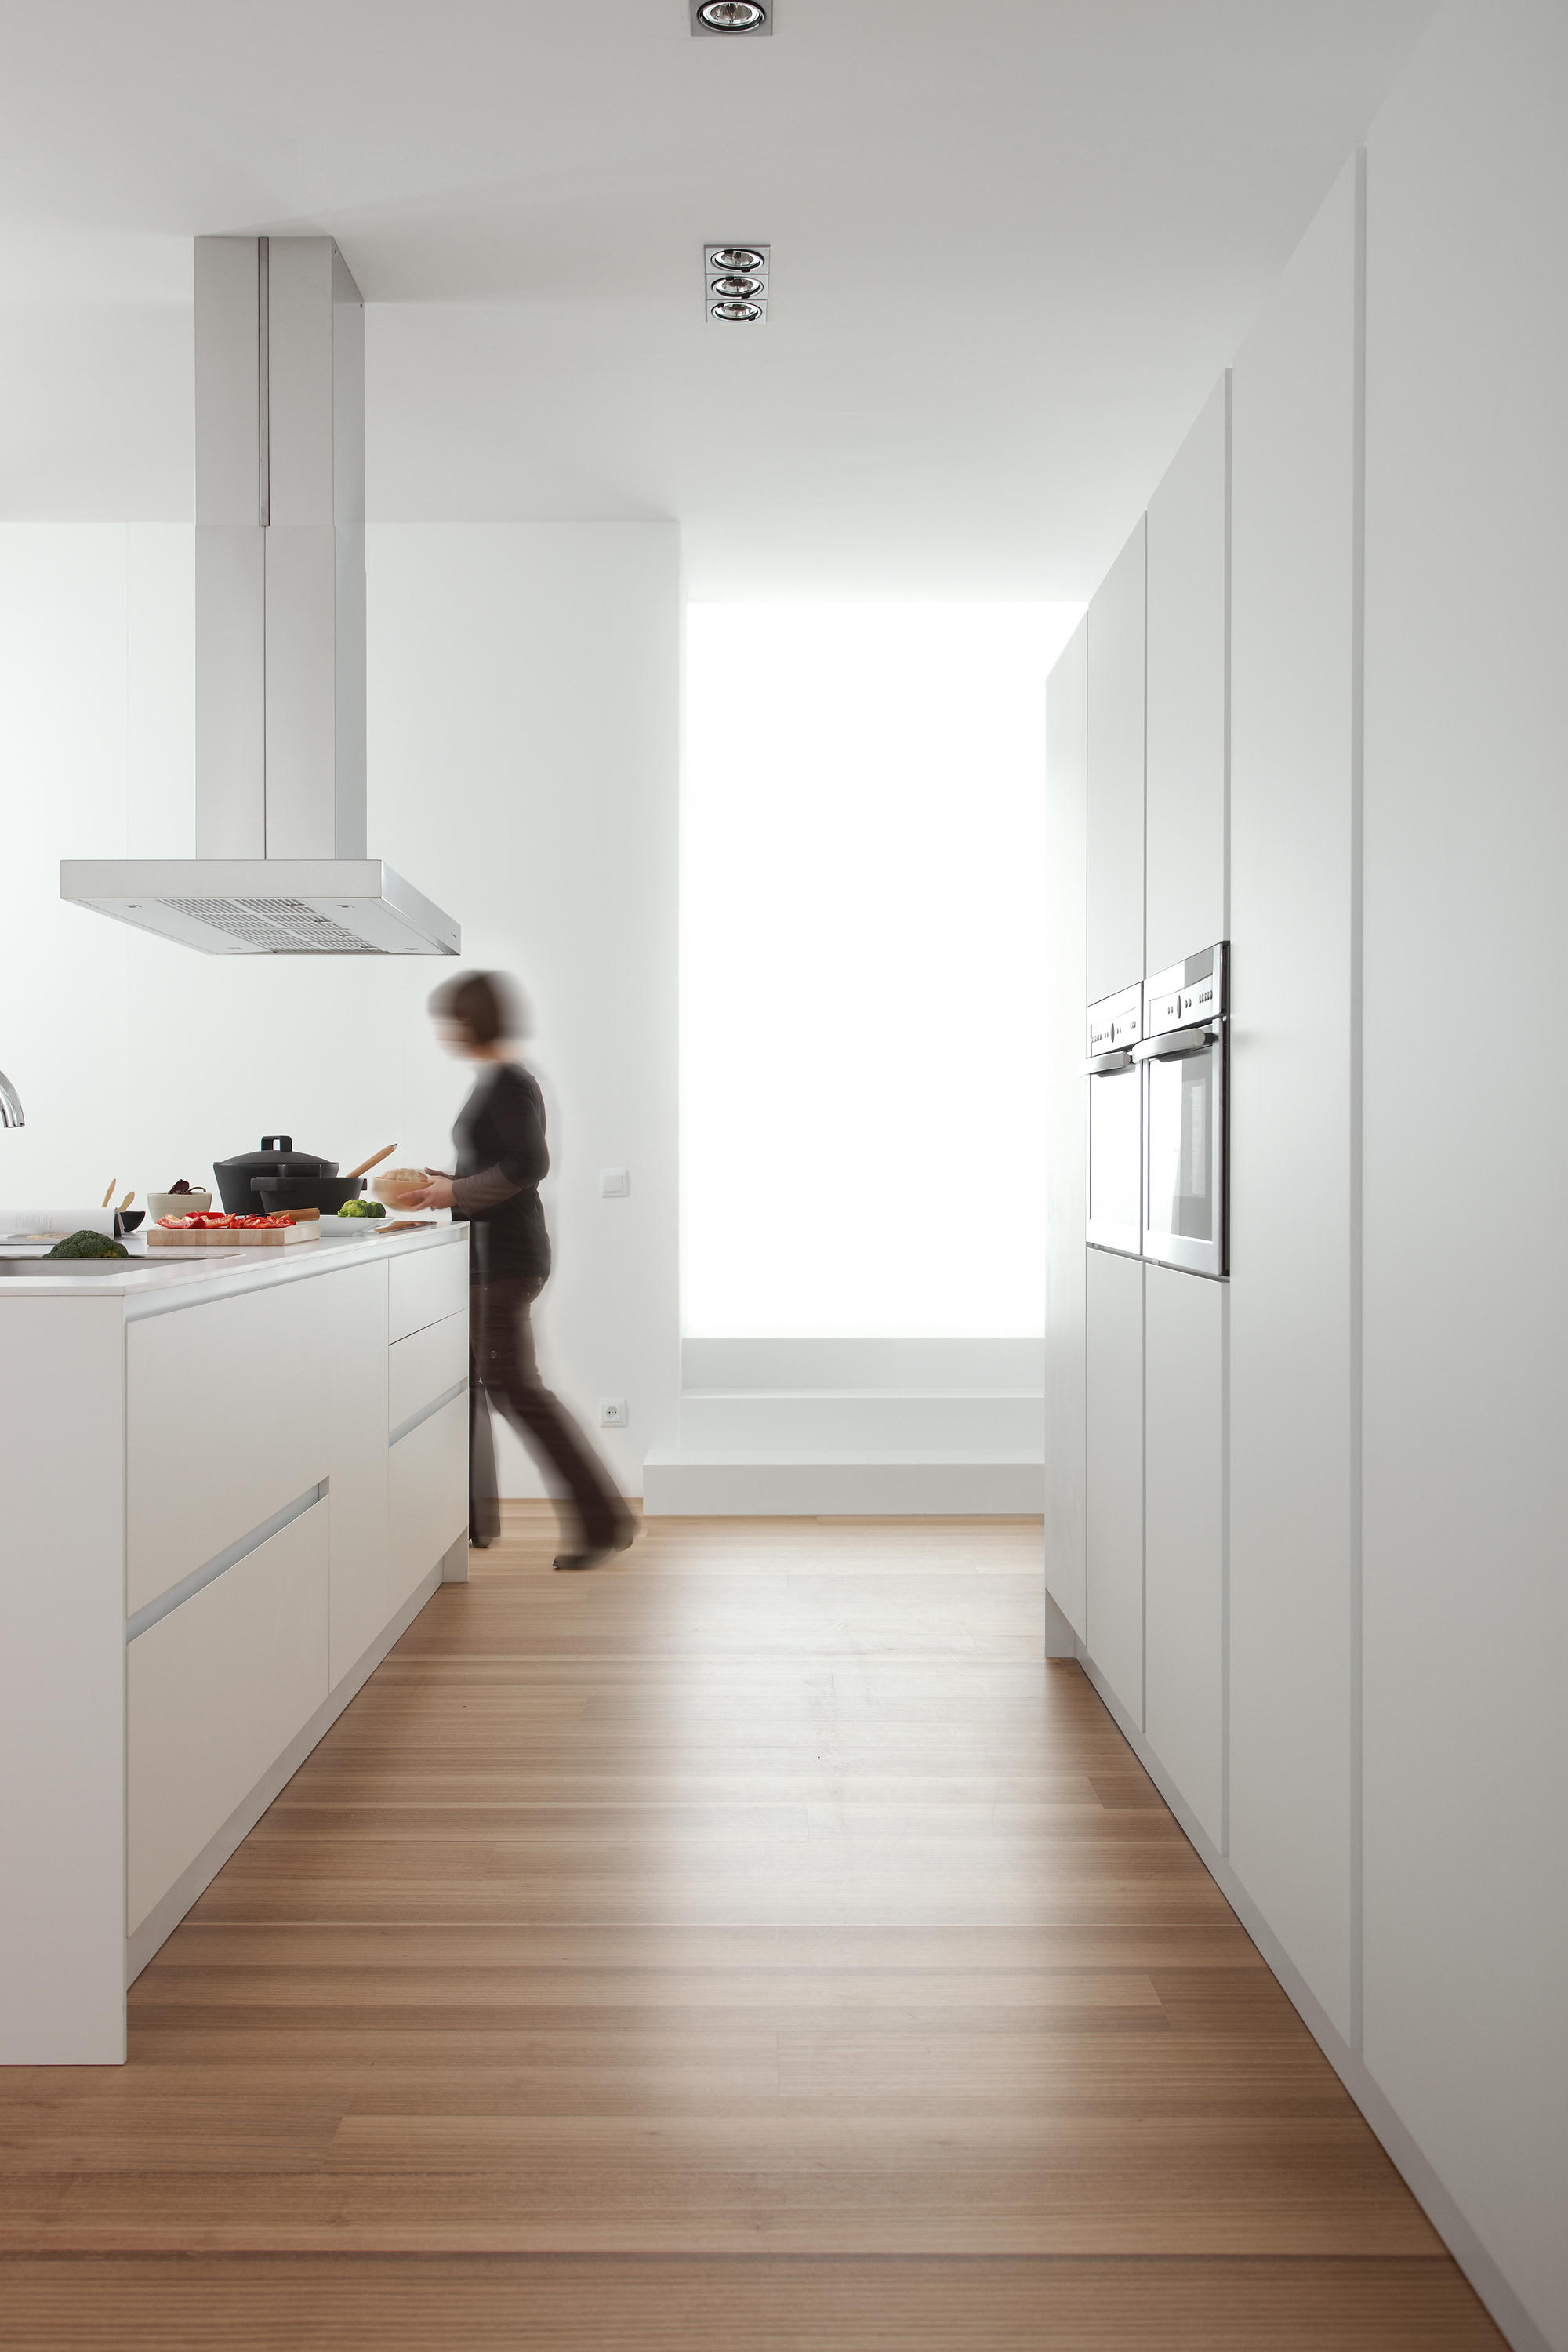 Serie 45 Polar White Island Kitchens From Dica